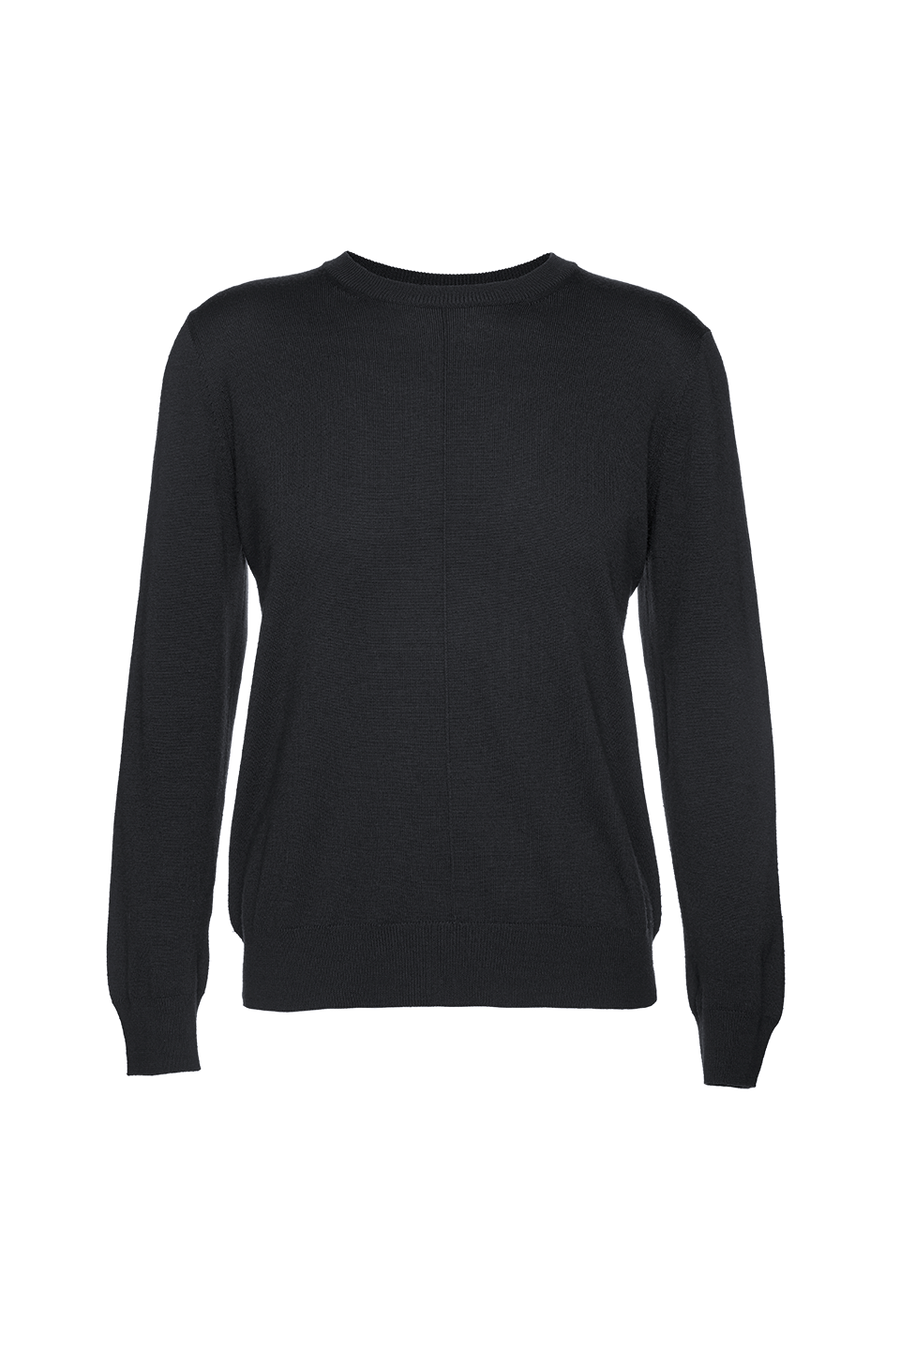 THE ST MORITZ COMFORT SWEATER